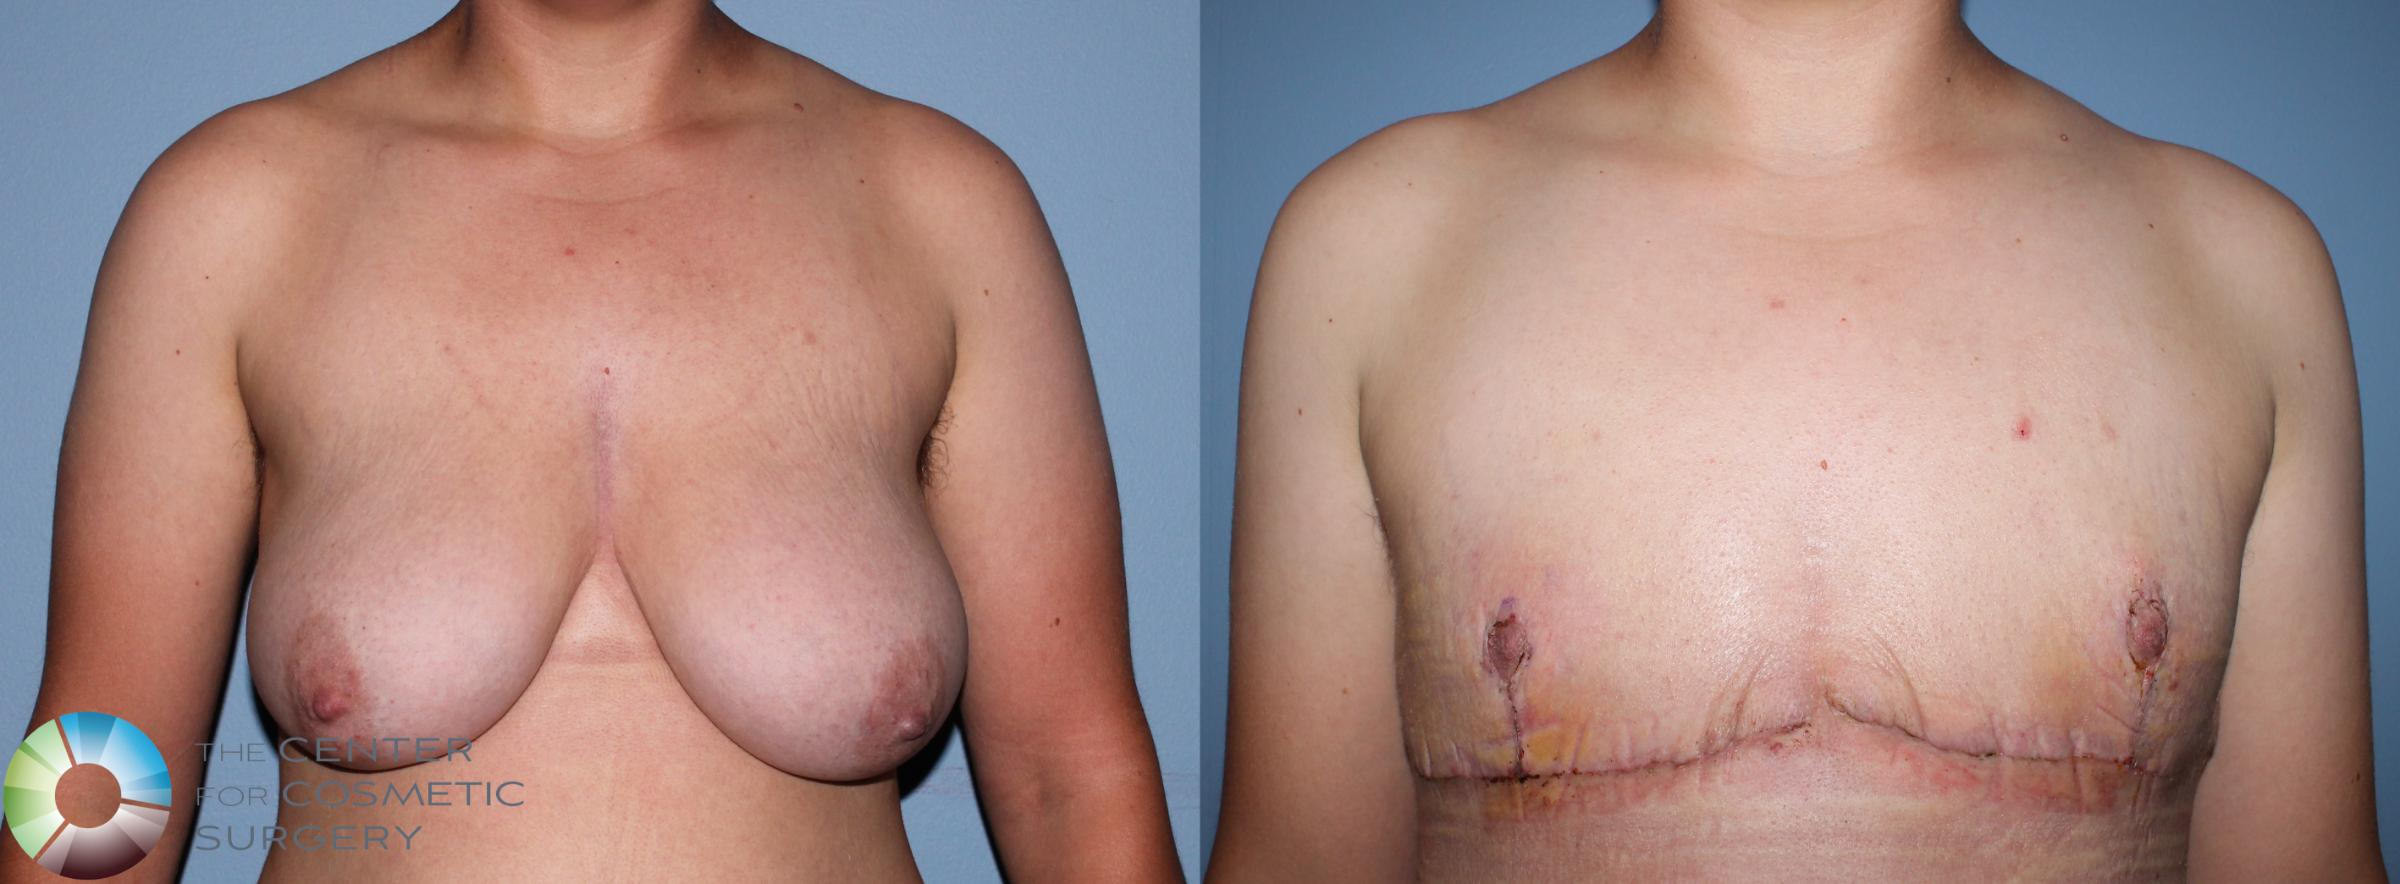 FTM Top Surgery/Chest Masculinization Case 11201 Before & After Front | Golden, CO | The Center for Cosmetic Surgery